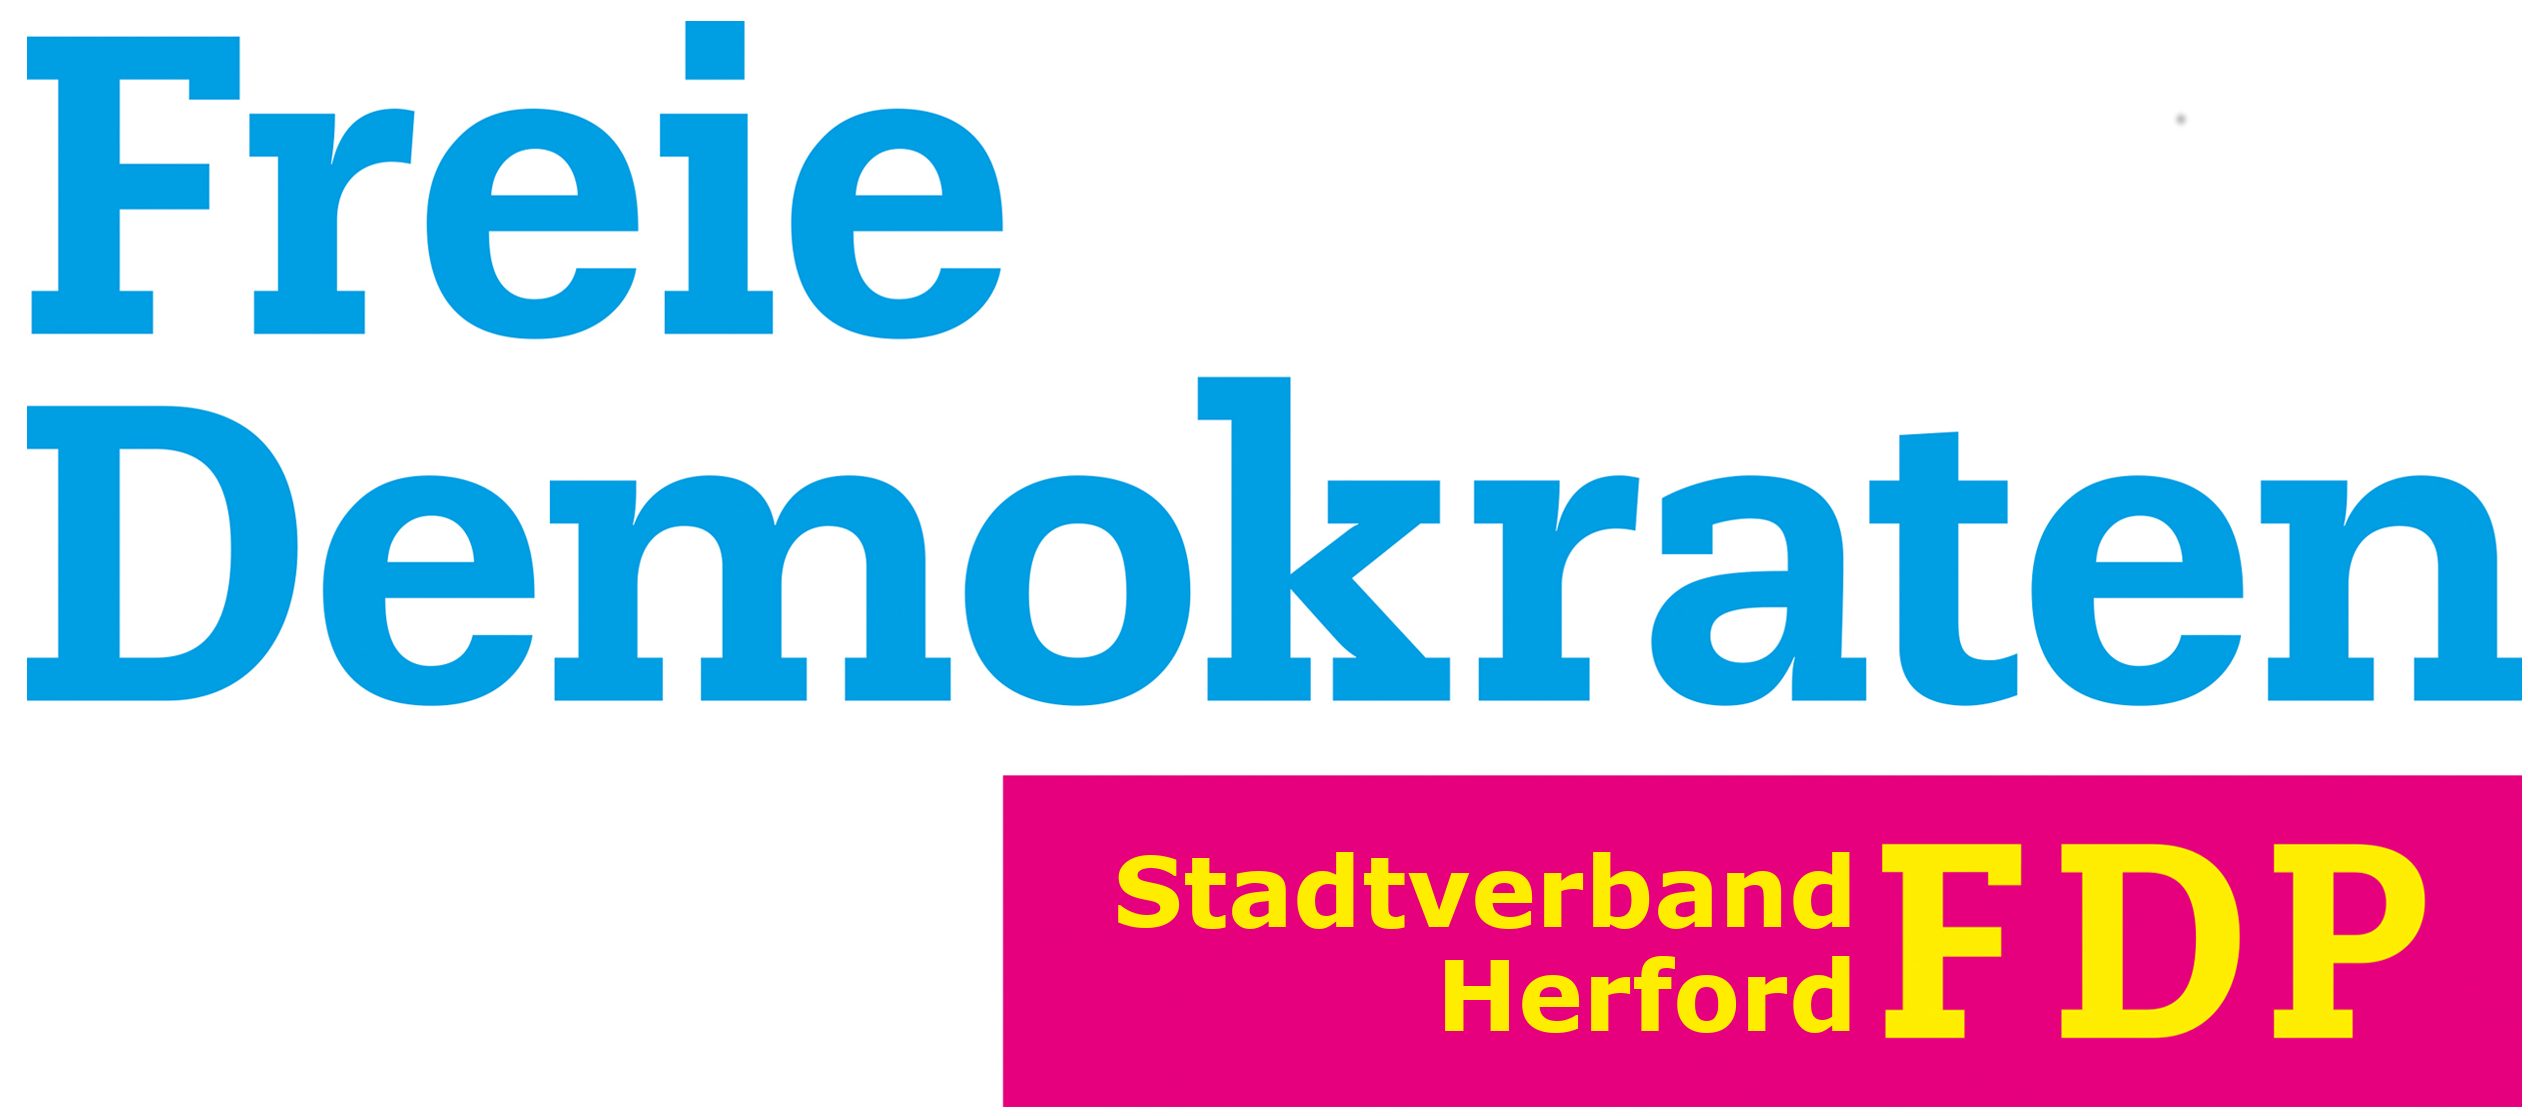 FDP Stadtverband Herford